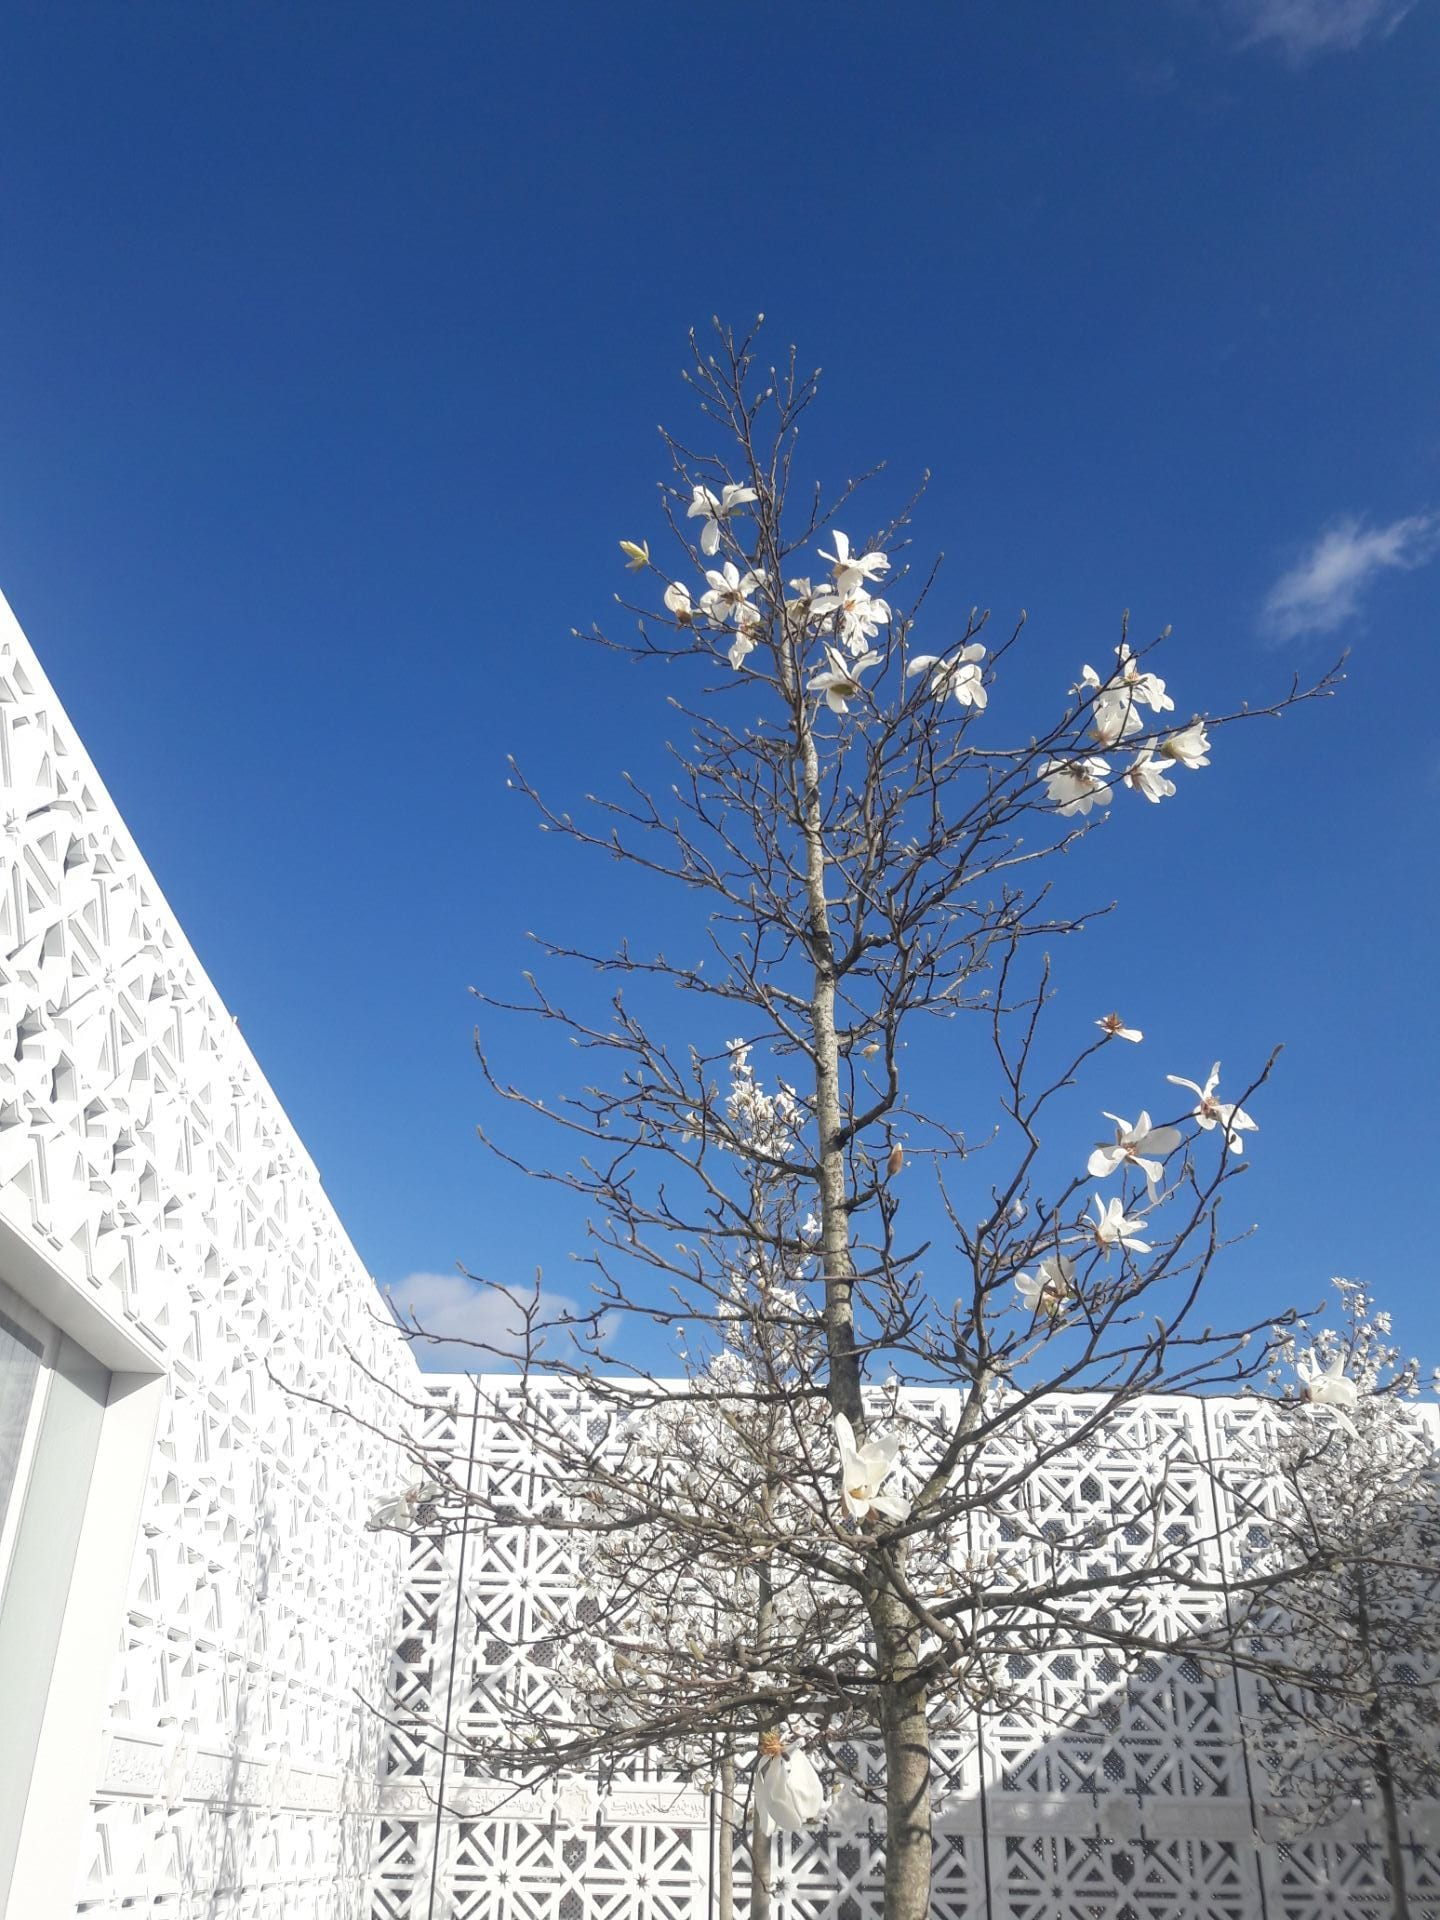 The Garden of Light small tree with white blooms against a blue sky with white decorative trellis in the background.